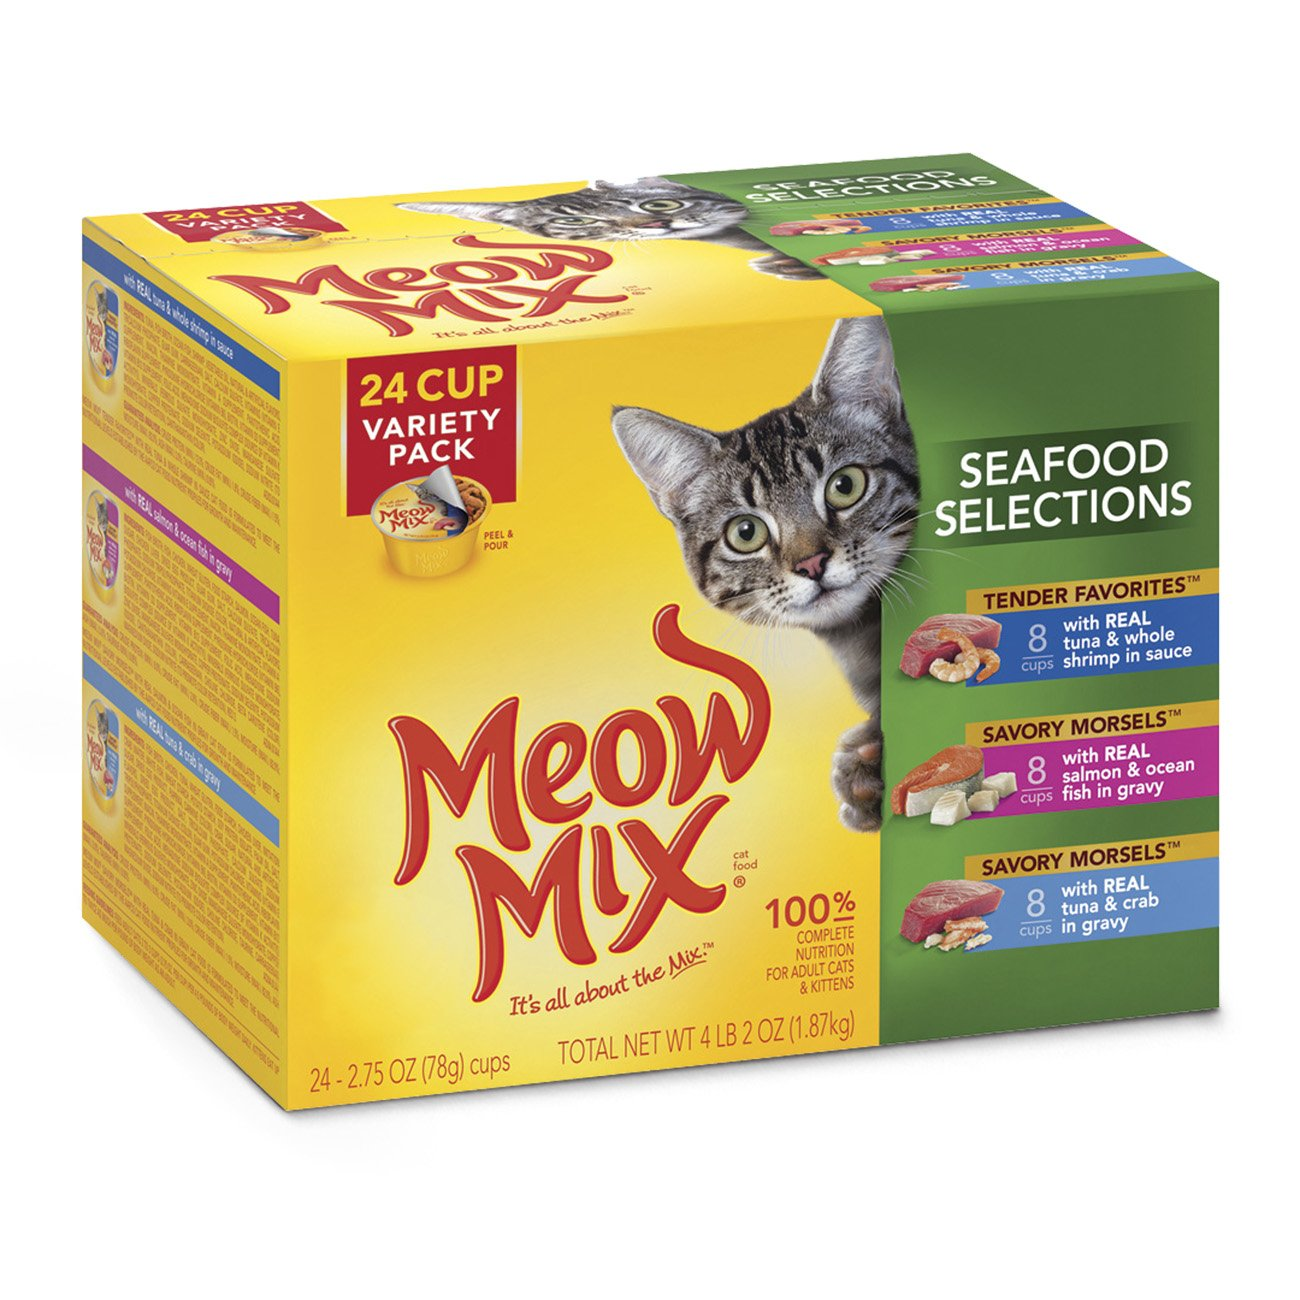 Meow Mix Seafood Selections Variety Pack Wet Cat Food, 2.75-Ounce (pack of 24) by Meow Mix (Image #1)